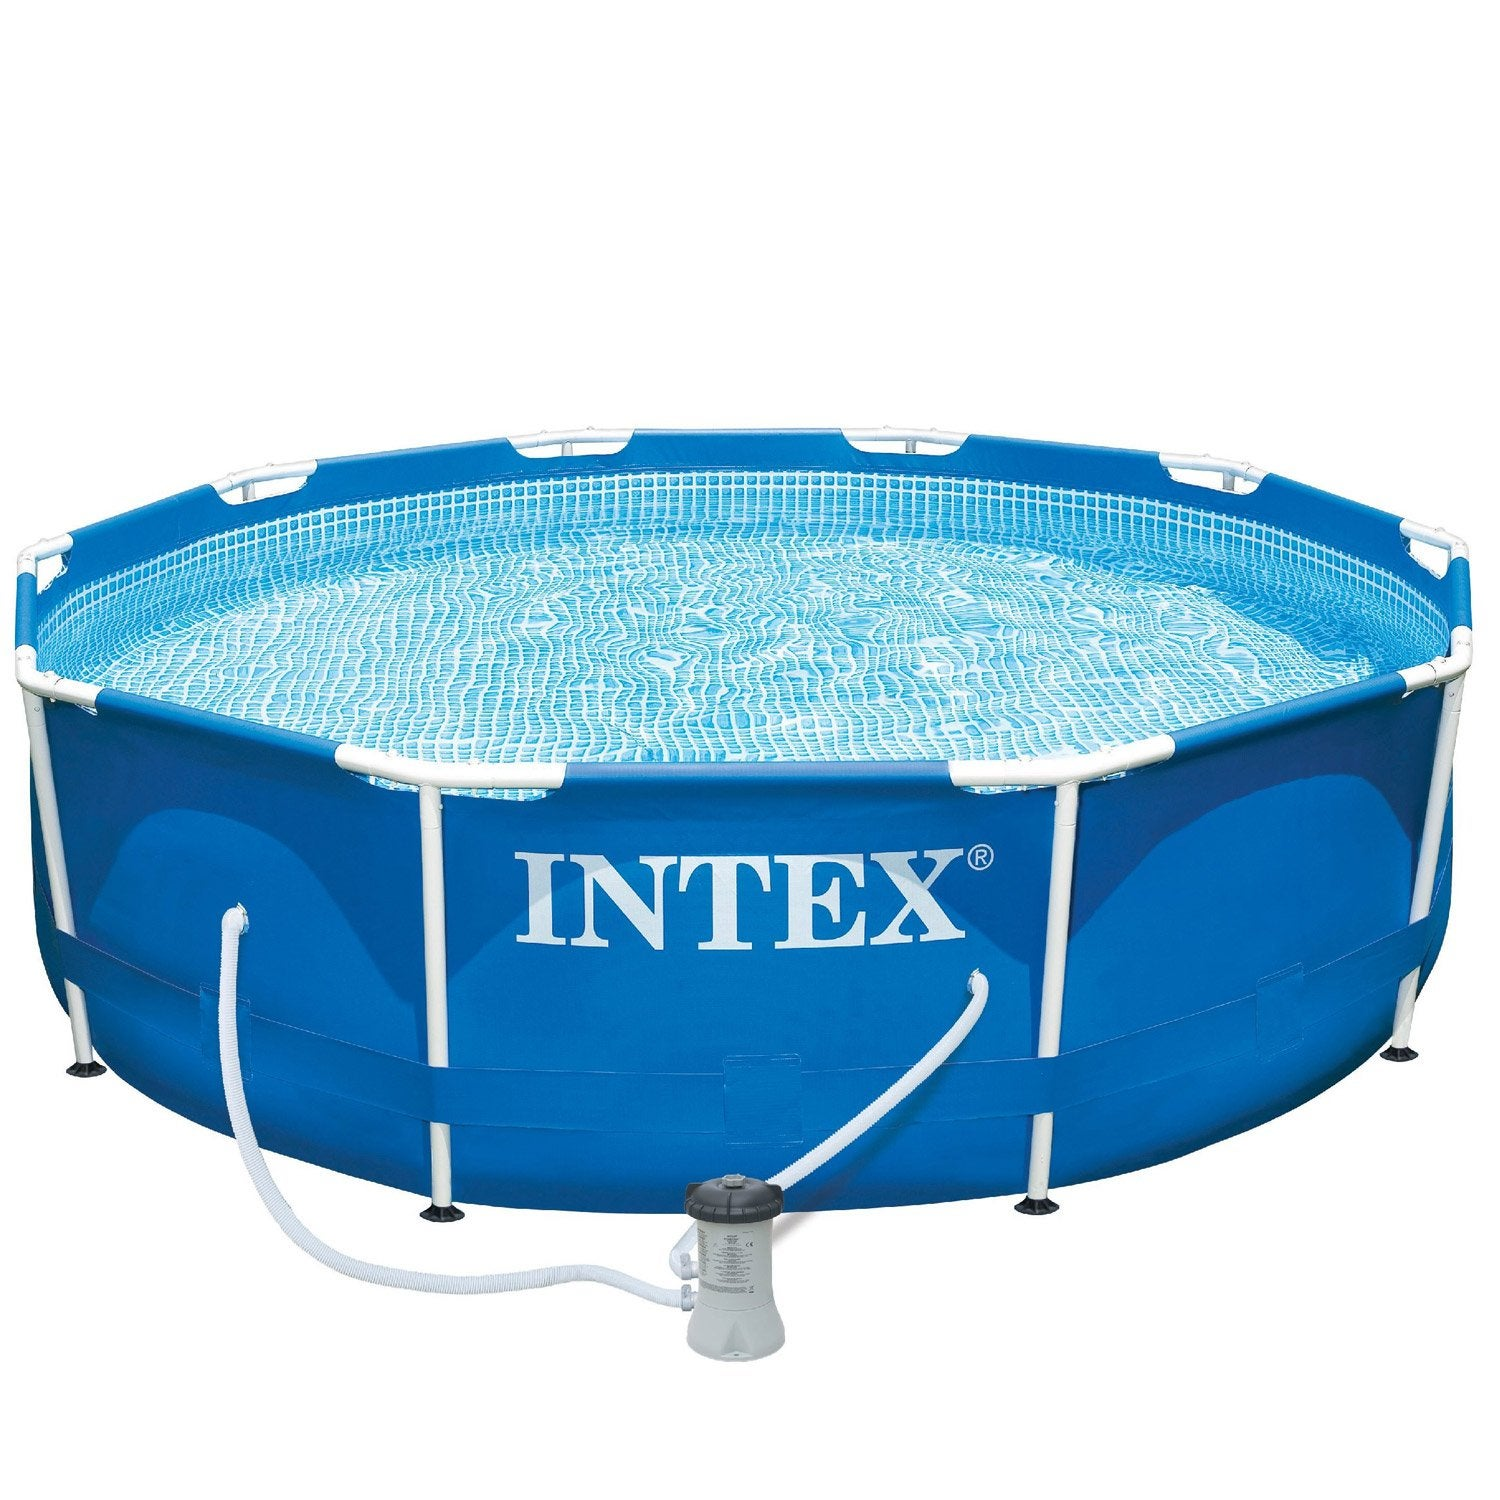 Piscine hors sol autoportante tubulaire metal frame intex for Piscine hors sol cora